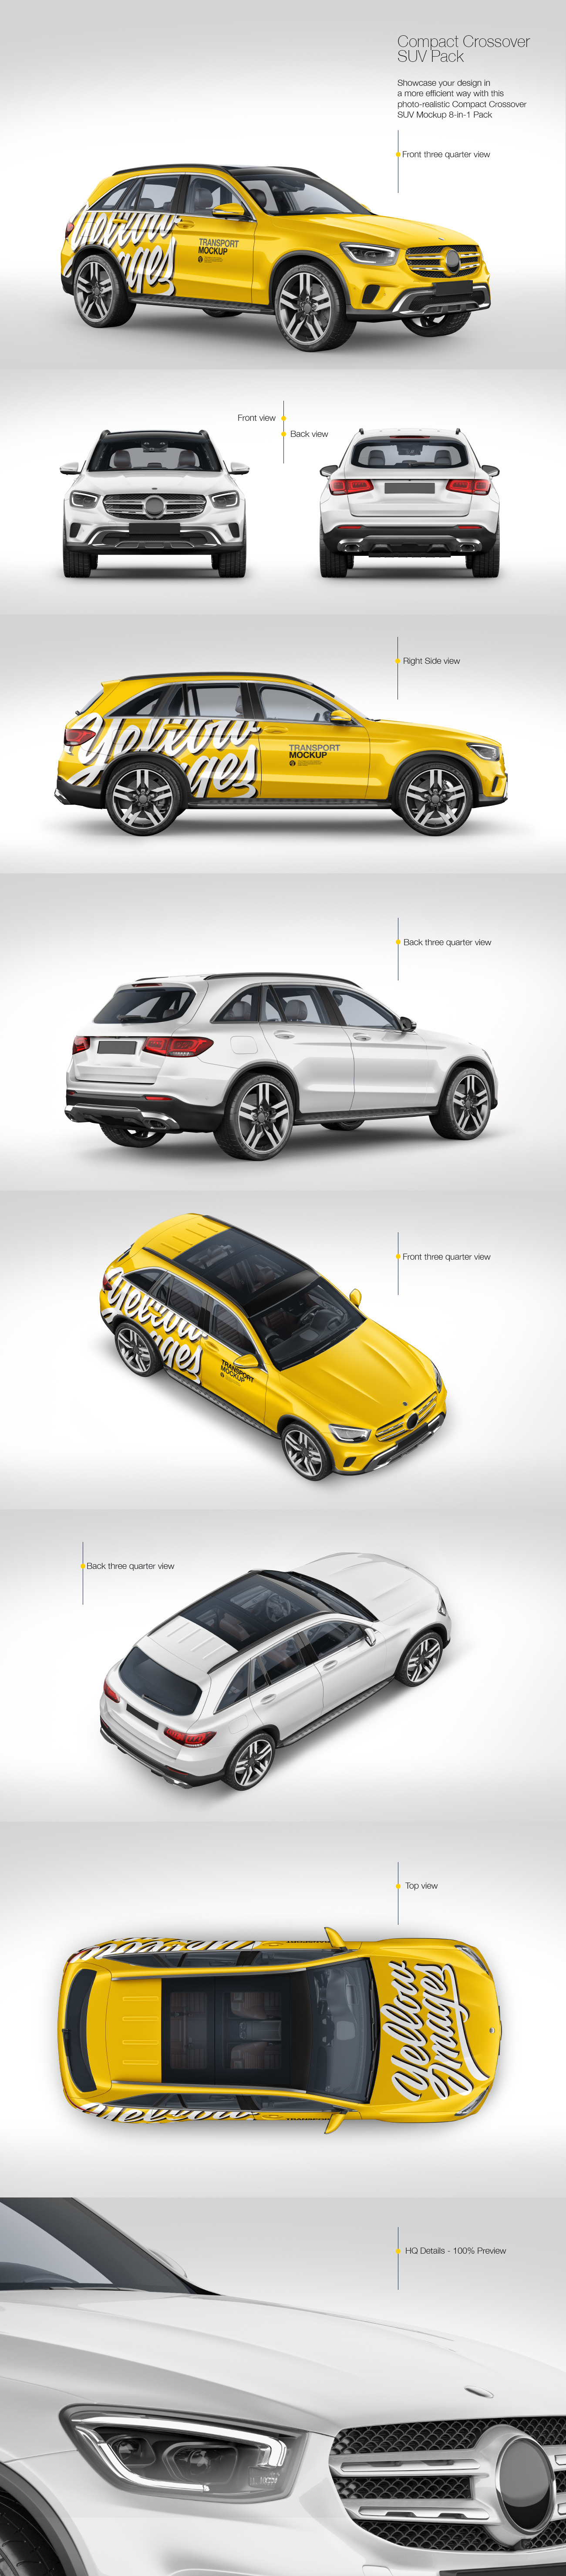 Compact Crossover SUV Mockup Pack